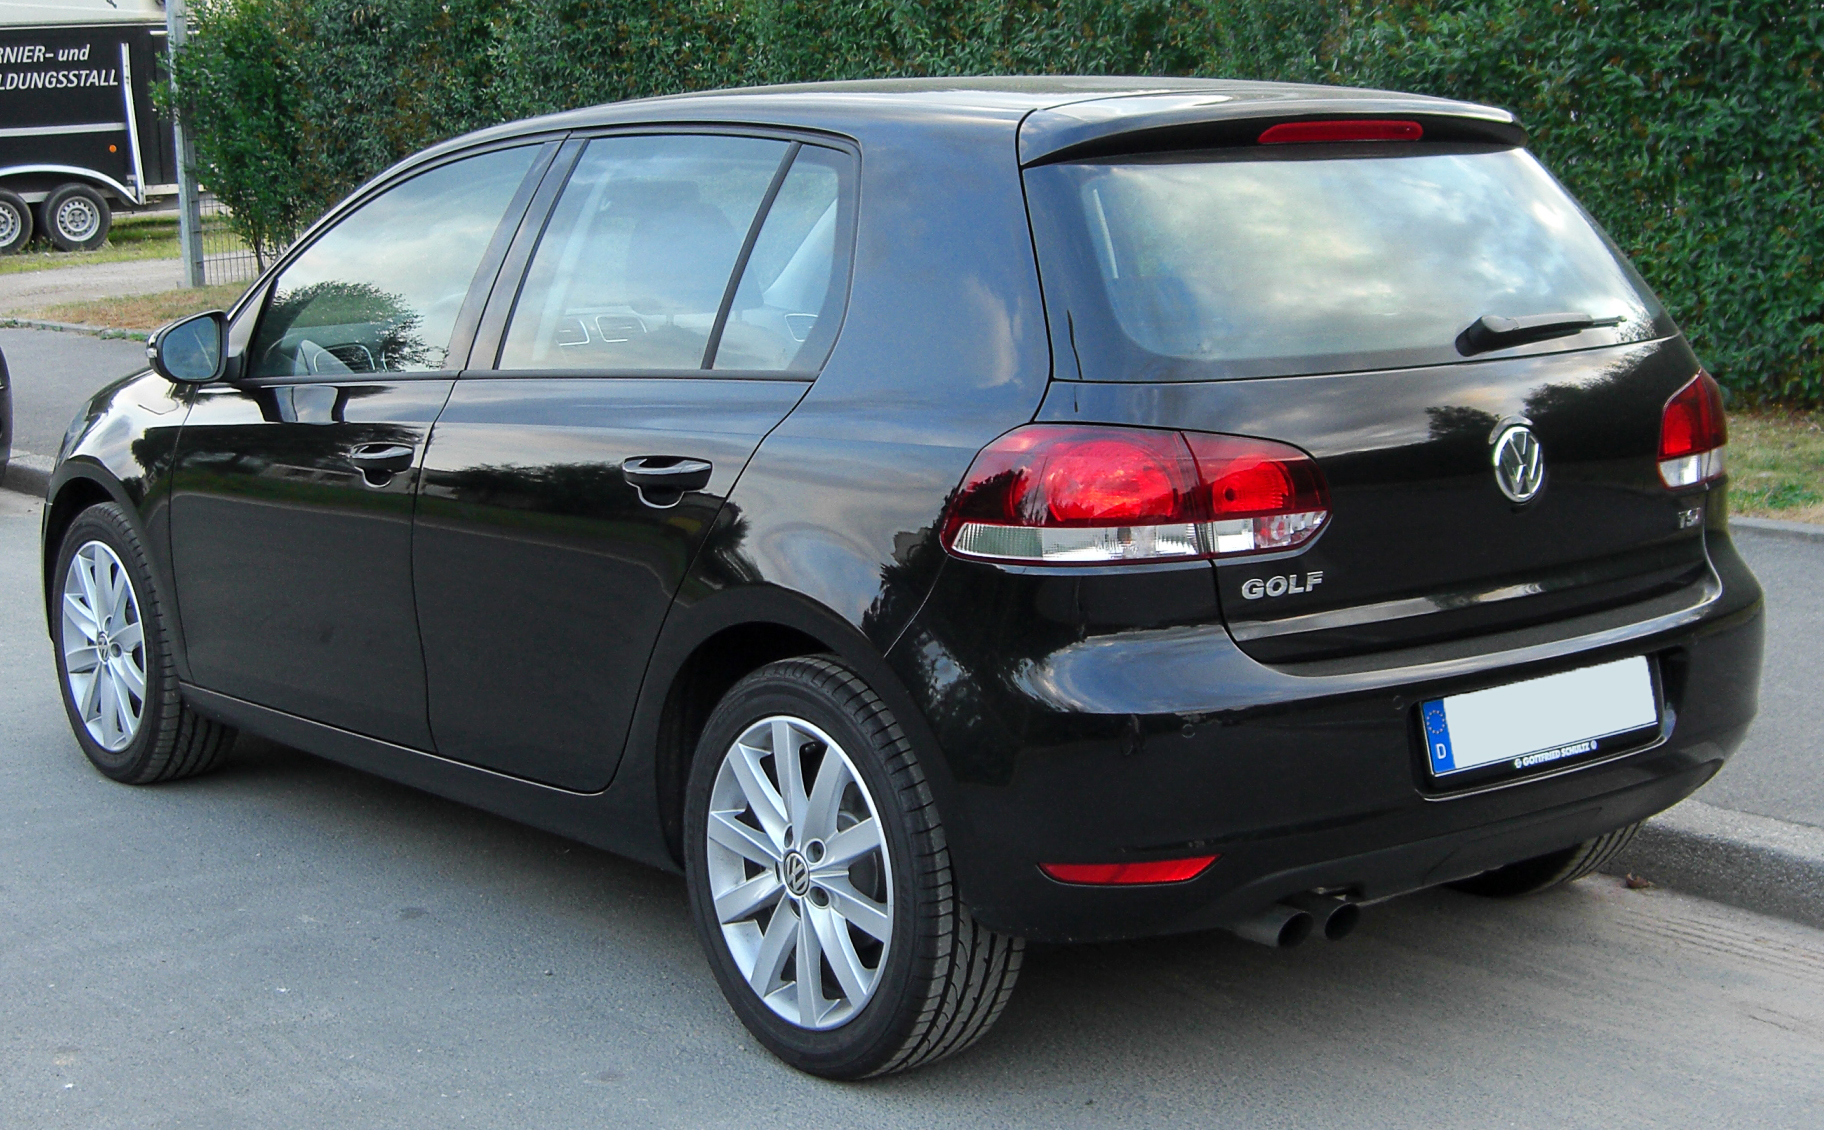 2010 volkswagen golf vi pictures information and specs. Black Bedroom Furniture Sets. Home Design Ideas